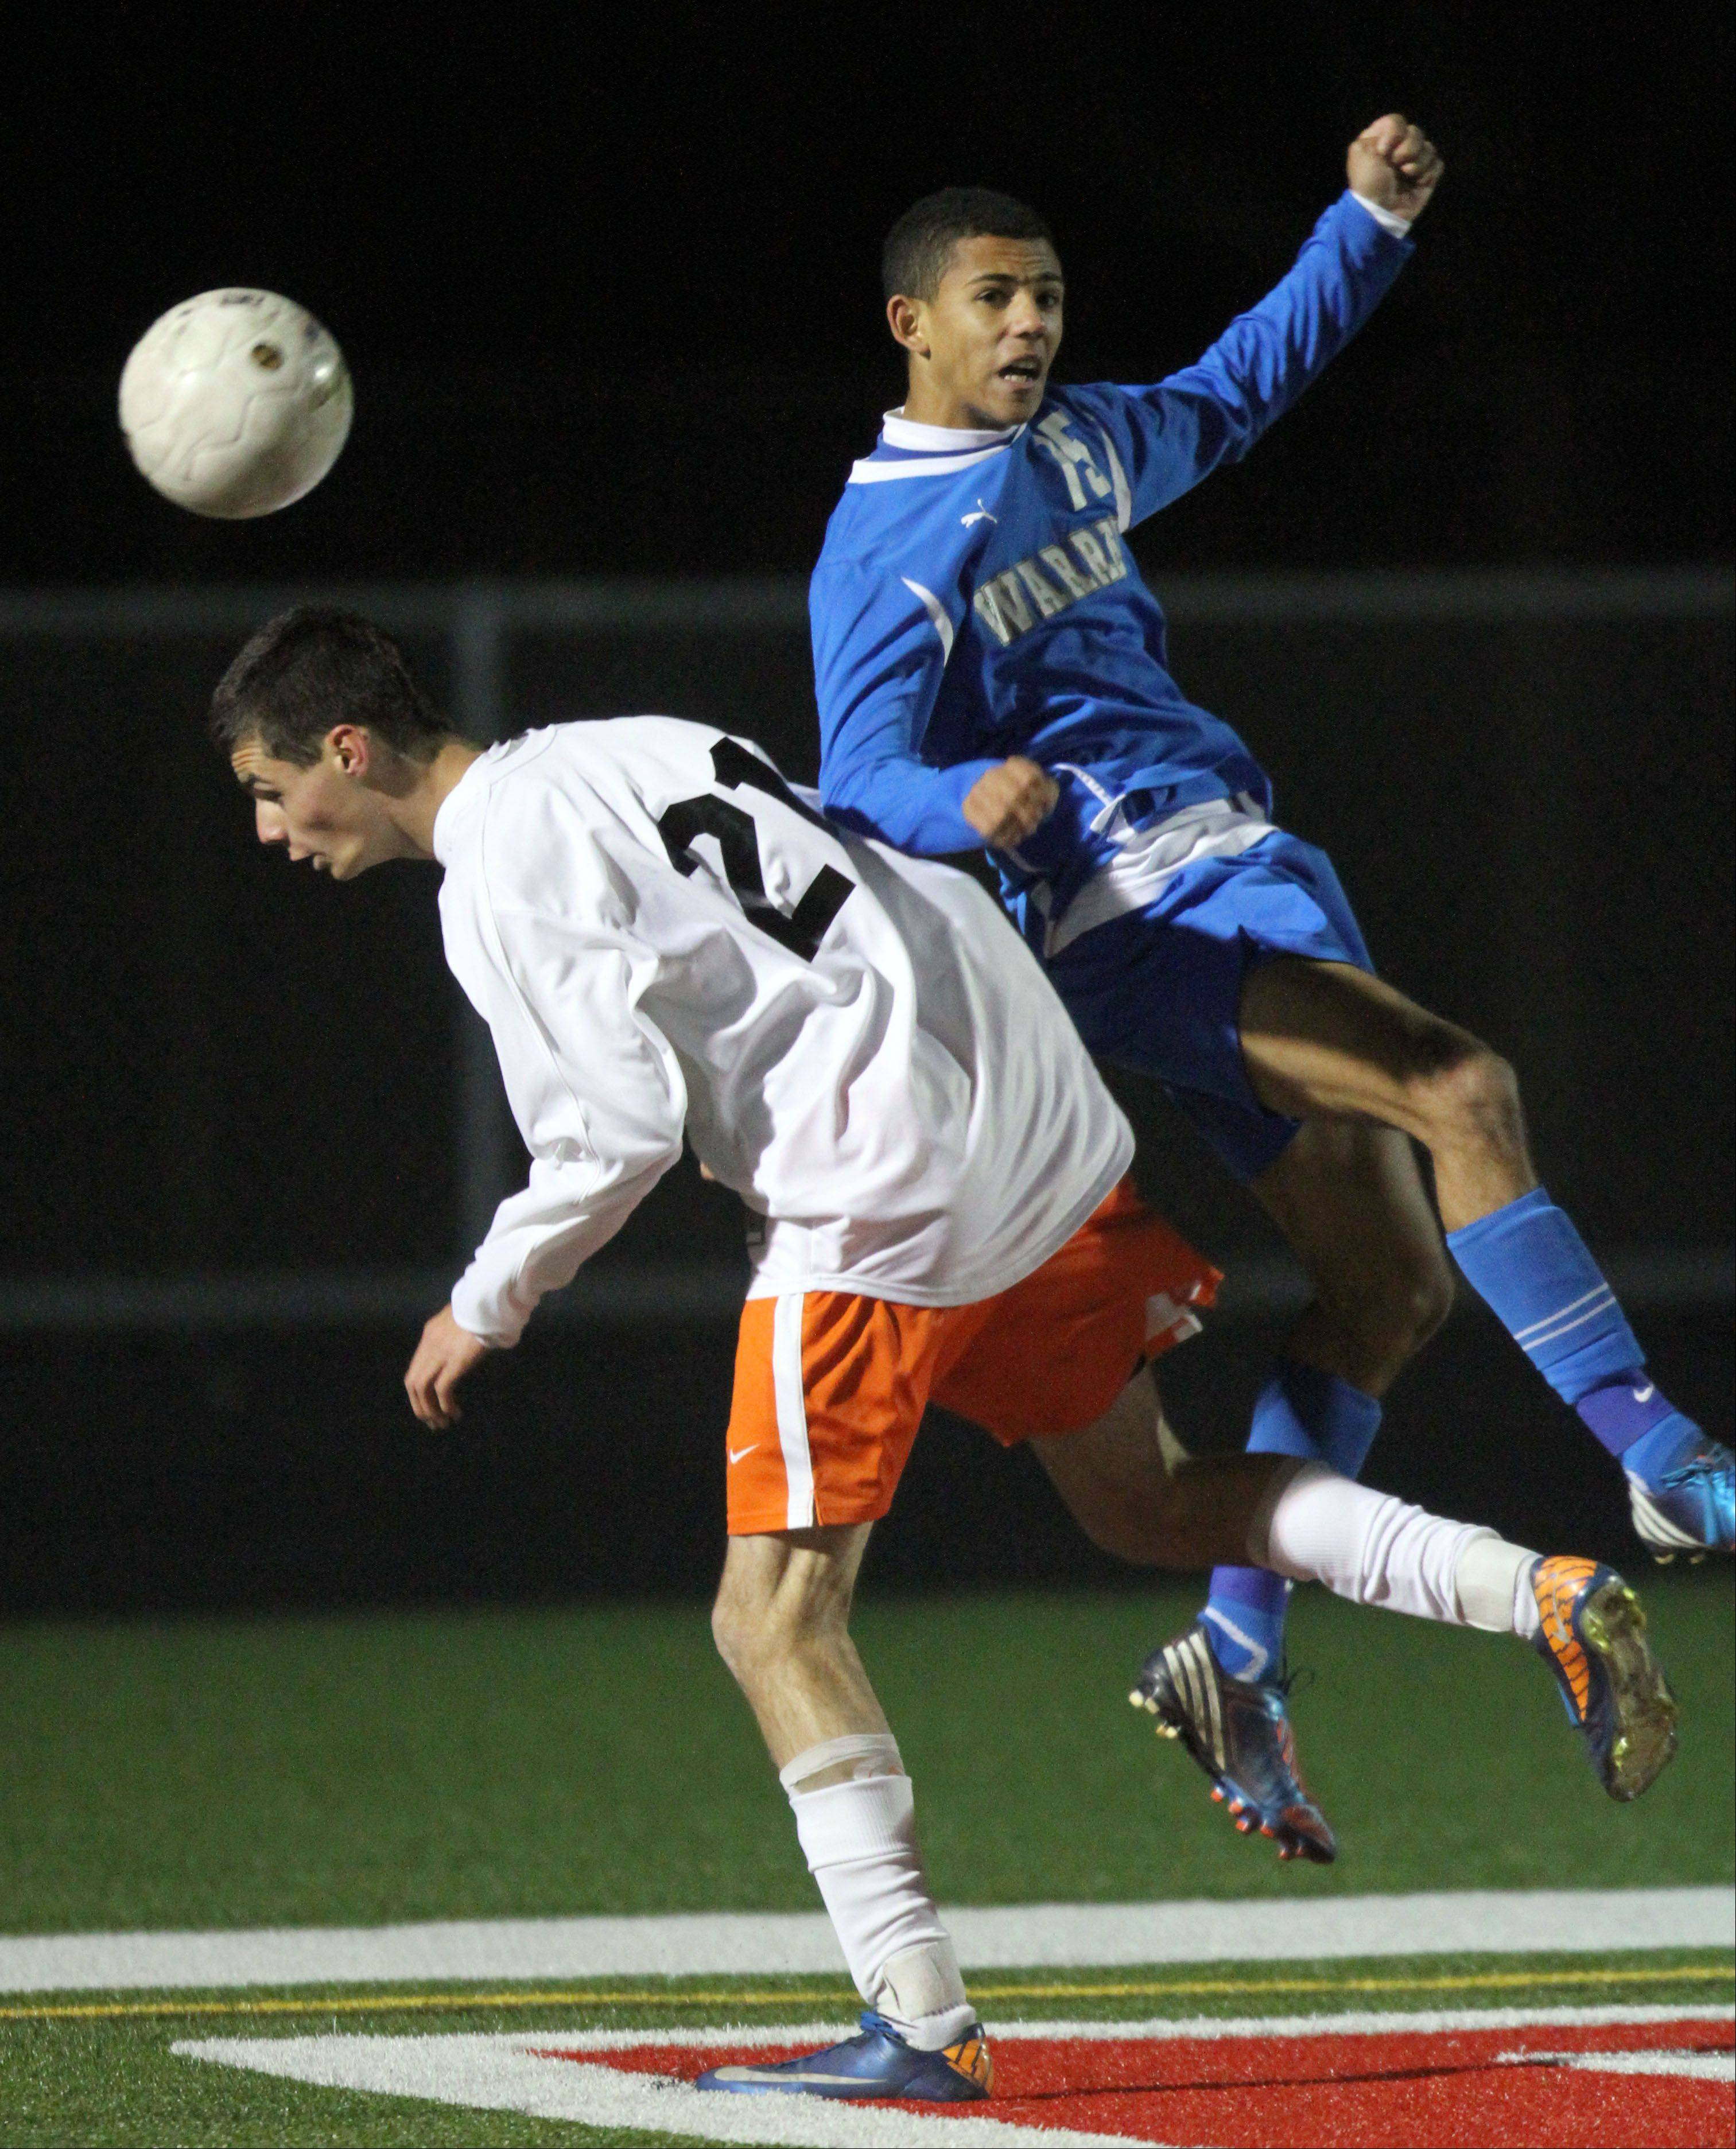 St. Charles East's Daniel DiLeonardi, left and Warren's Elijah Parker battle for the ball during super sectional soccer action Tuesday night at Barrington High School.